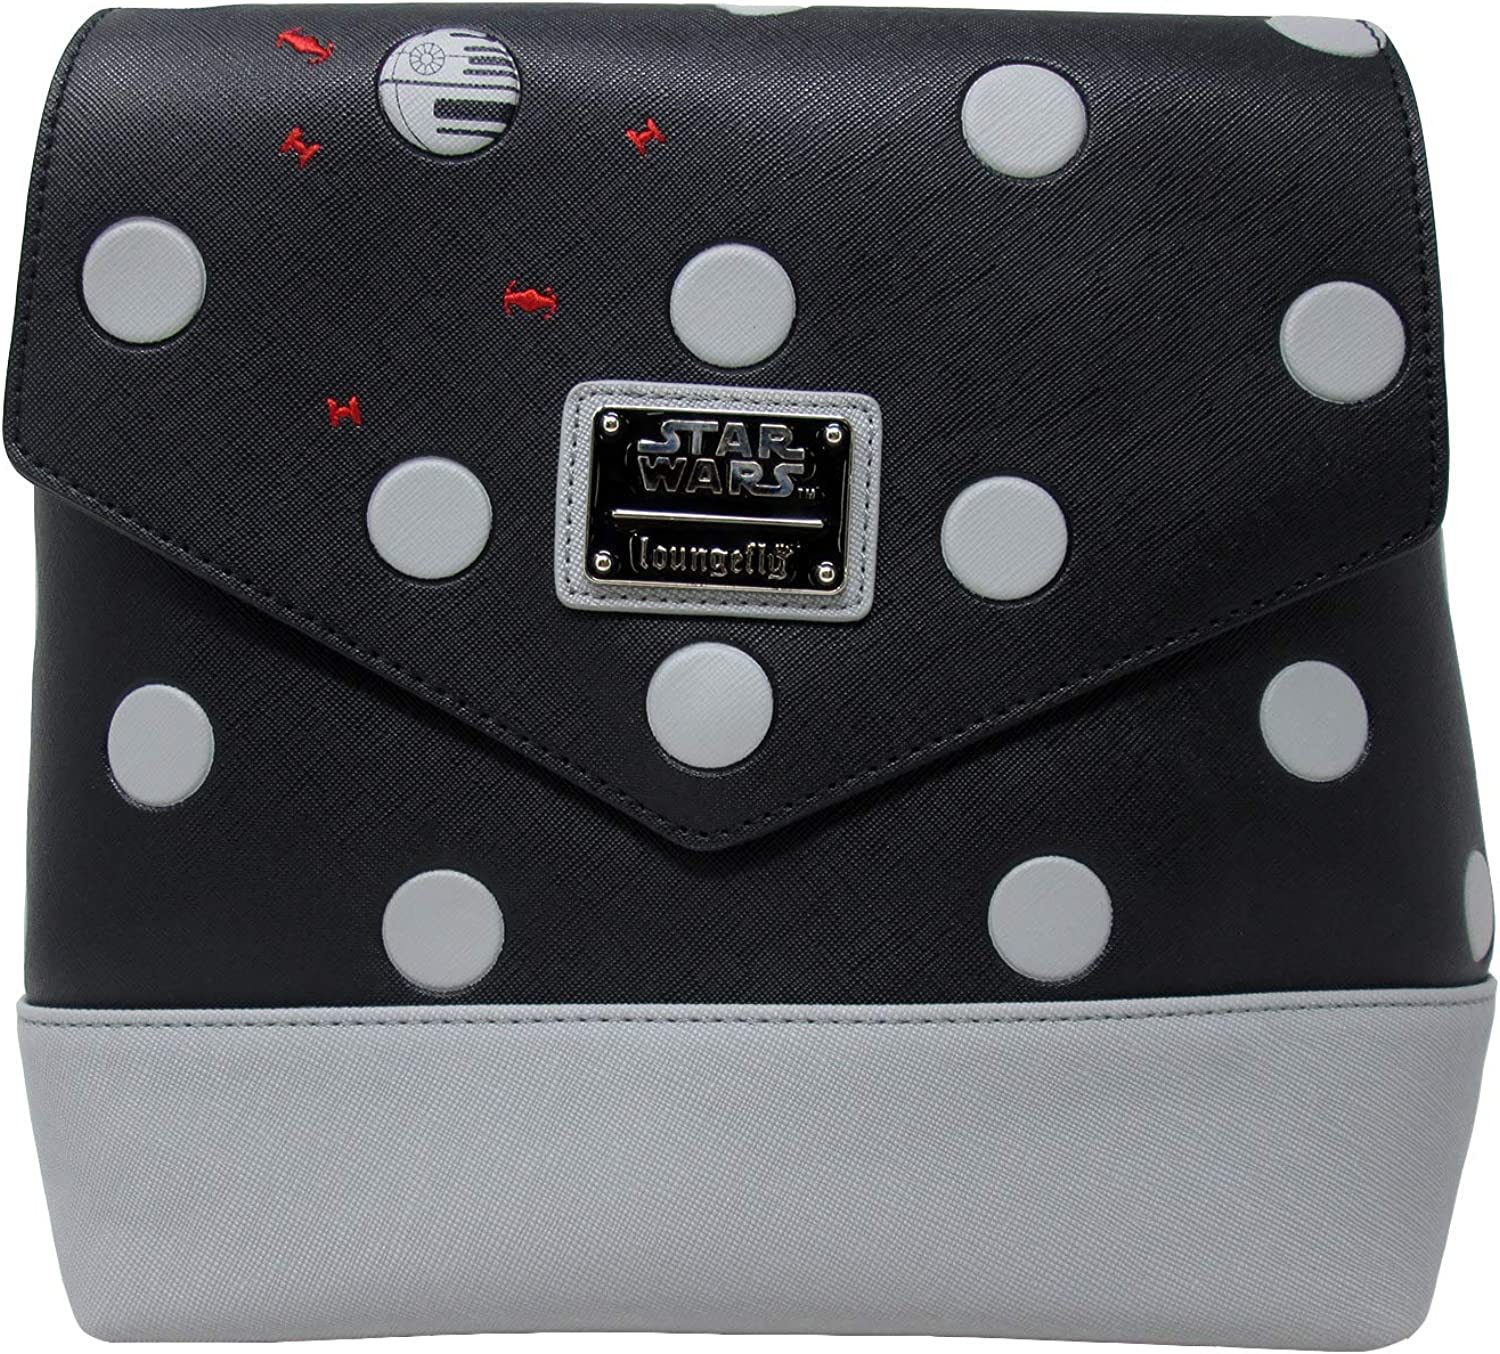 Loungefly x Star Wars Polka Dot Death Star Patterned Mini Backpack